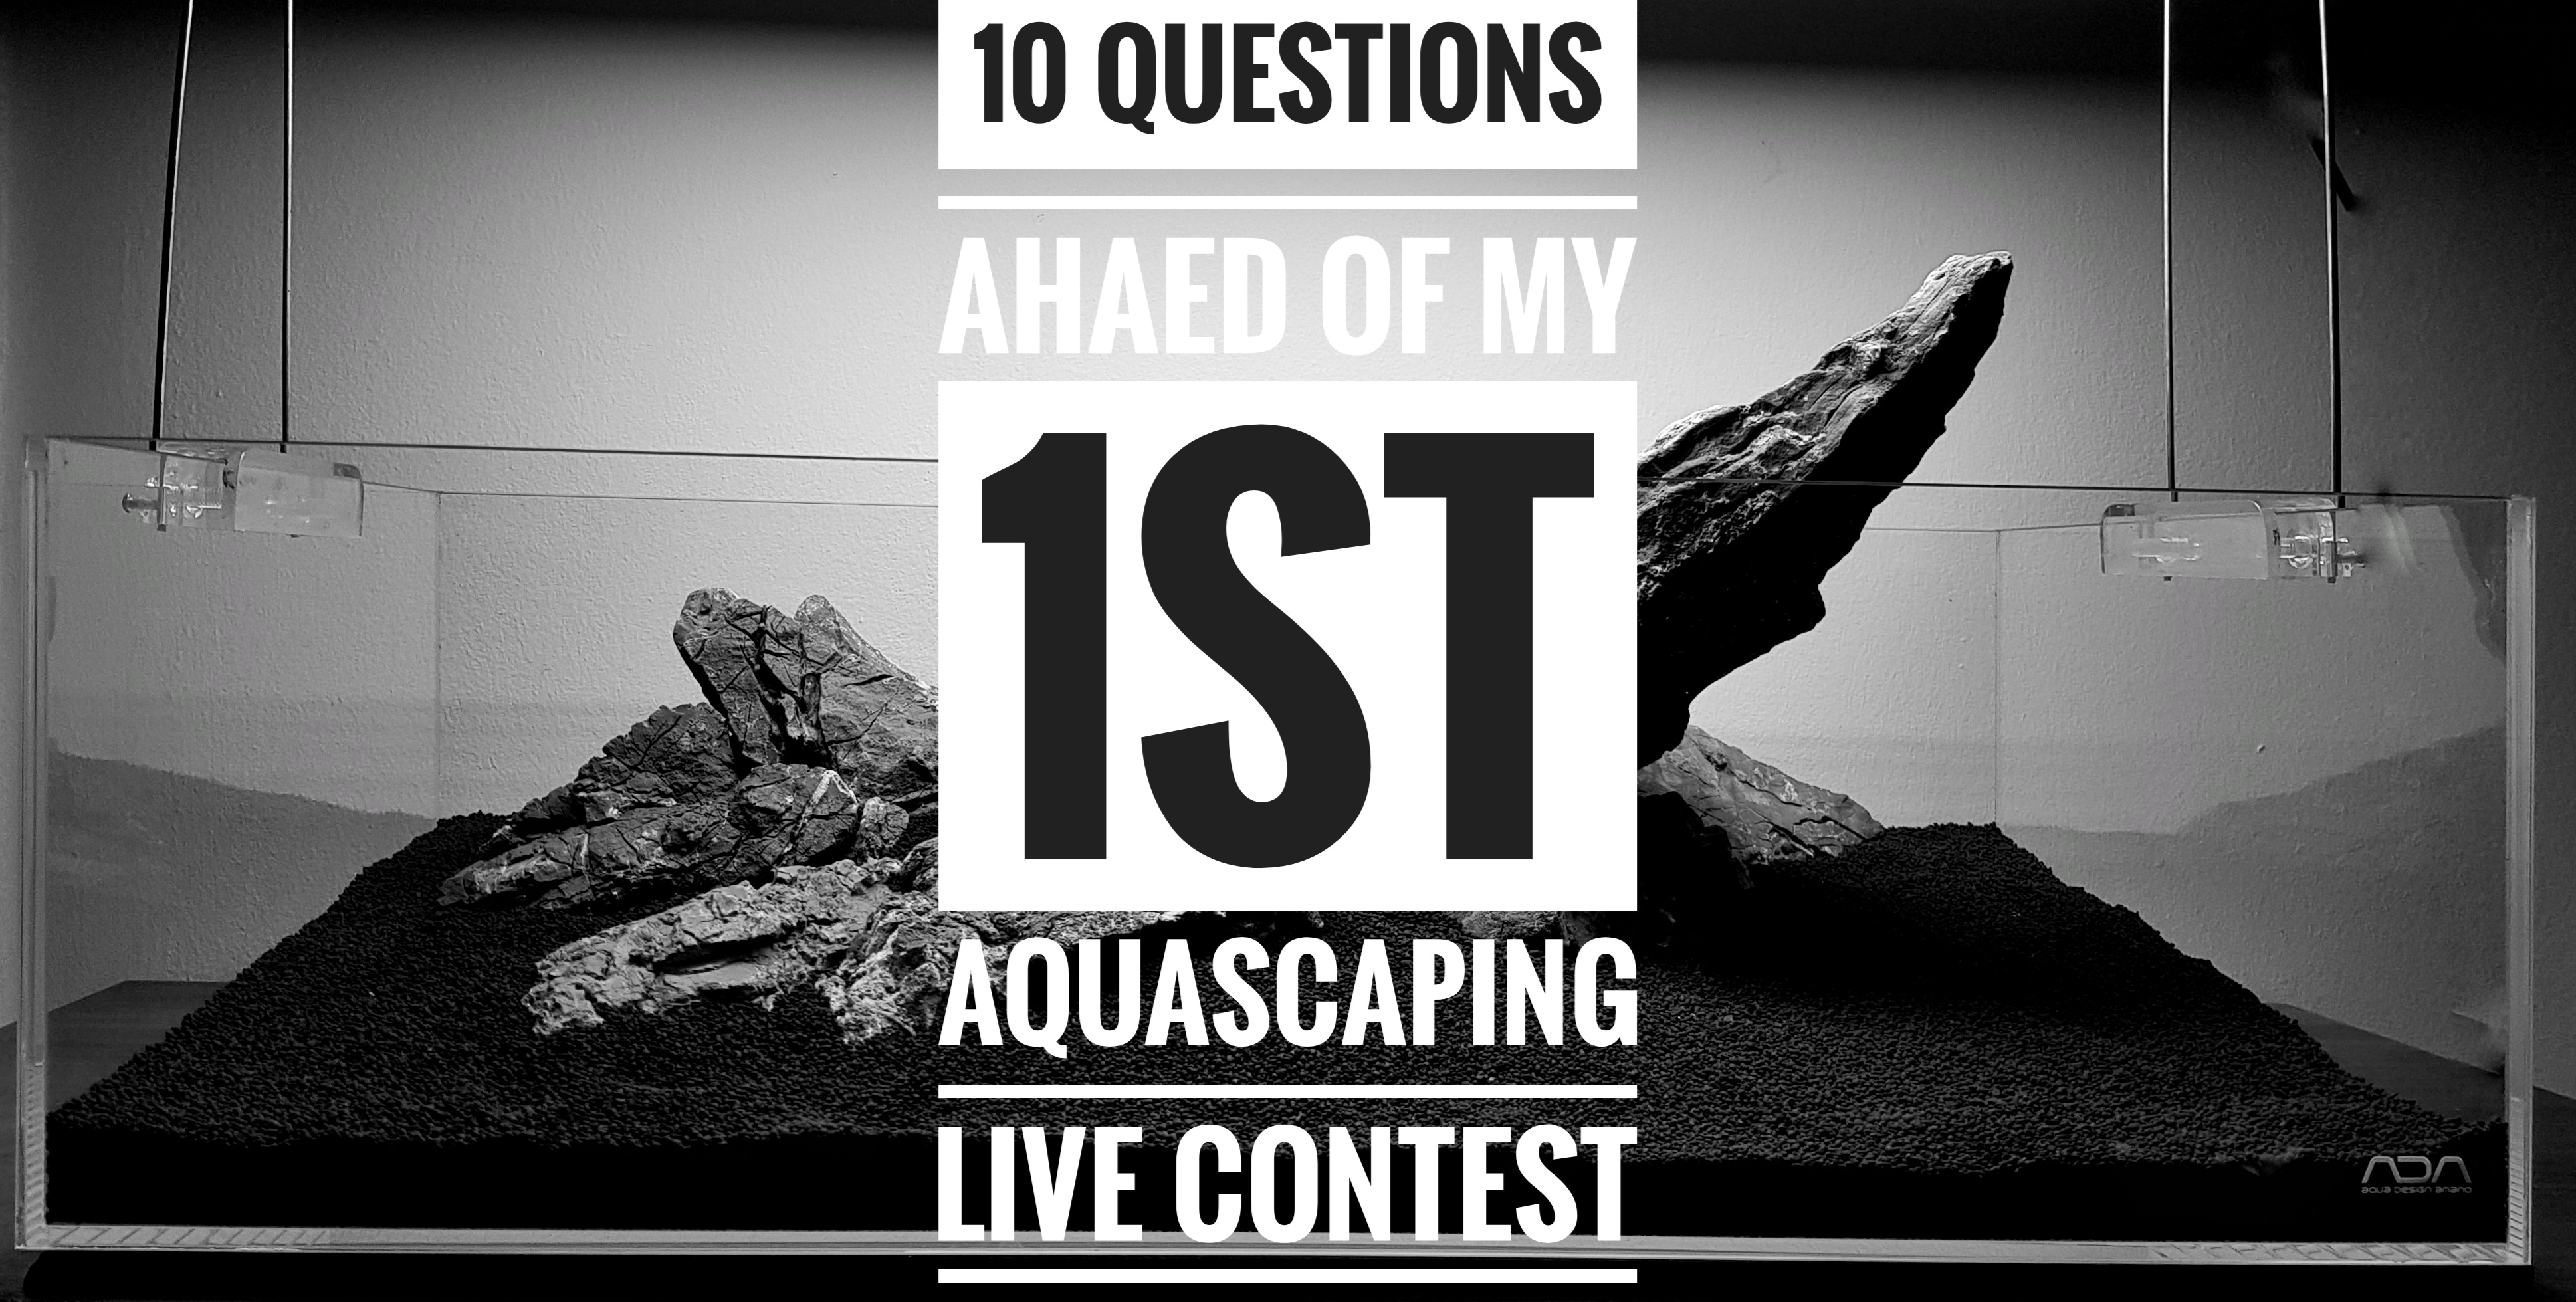 10 things you ask yourself before your first live aquascaping contest